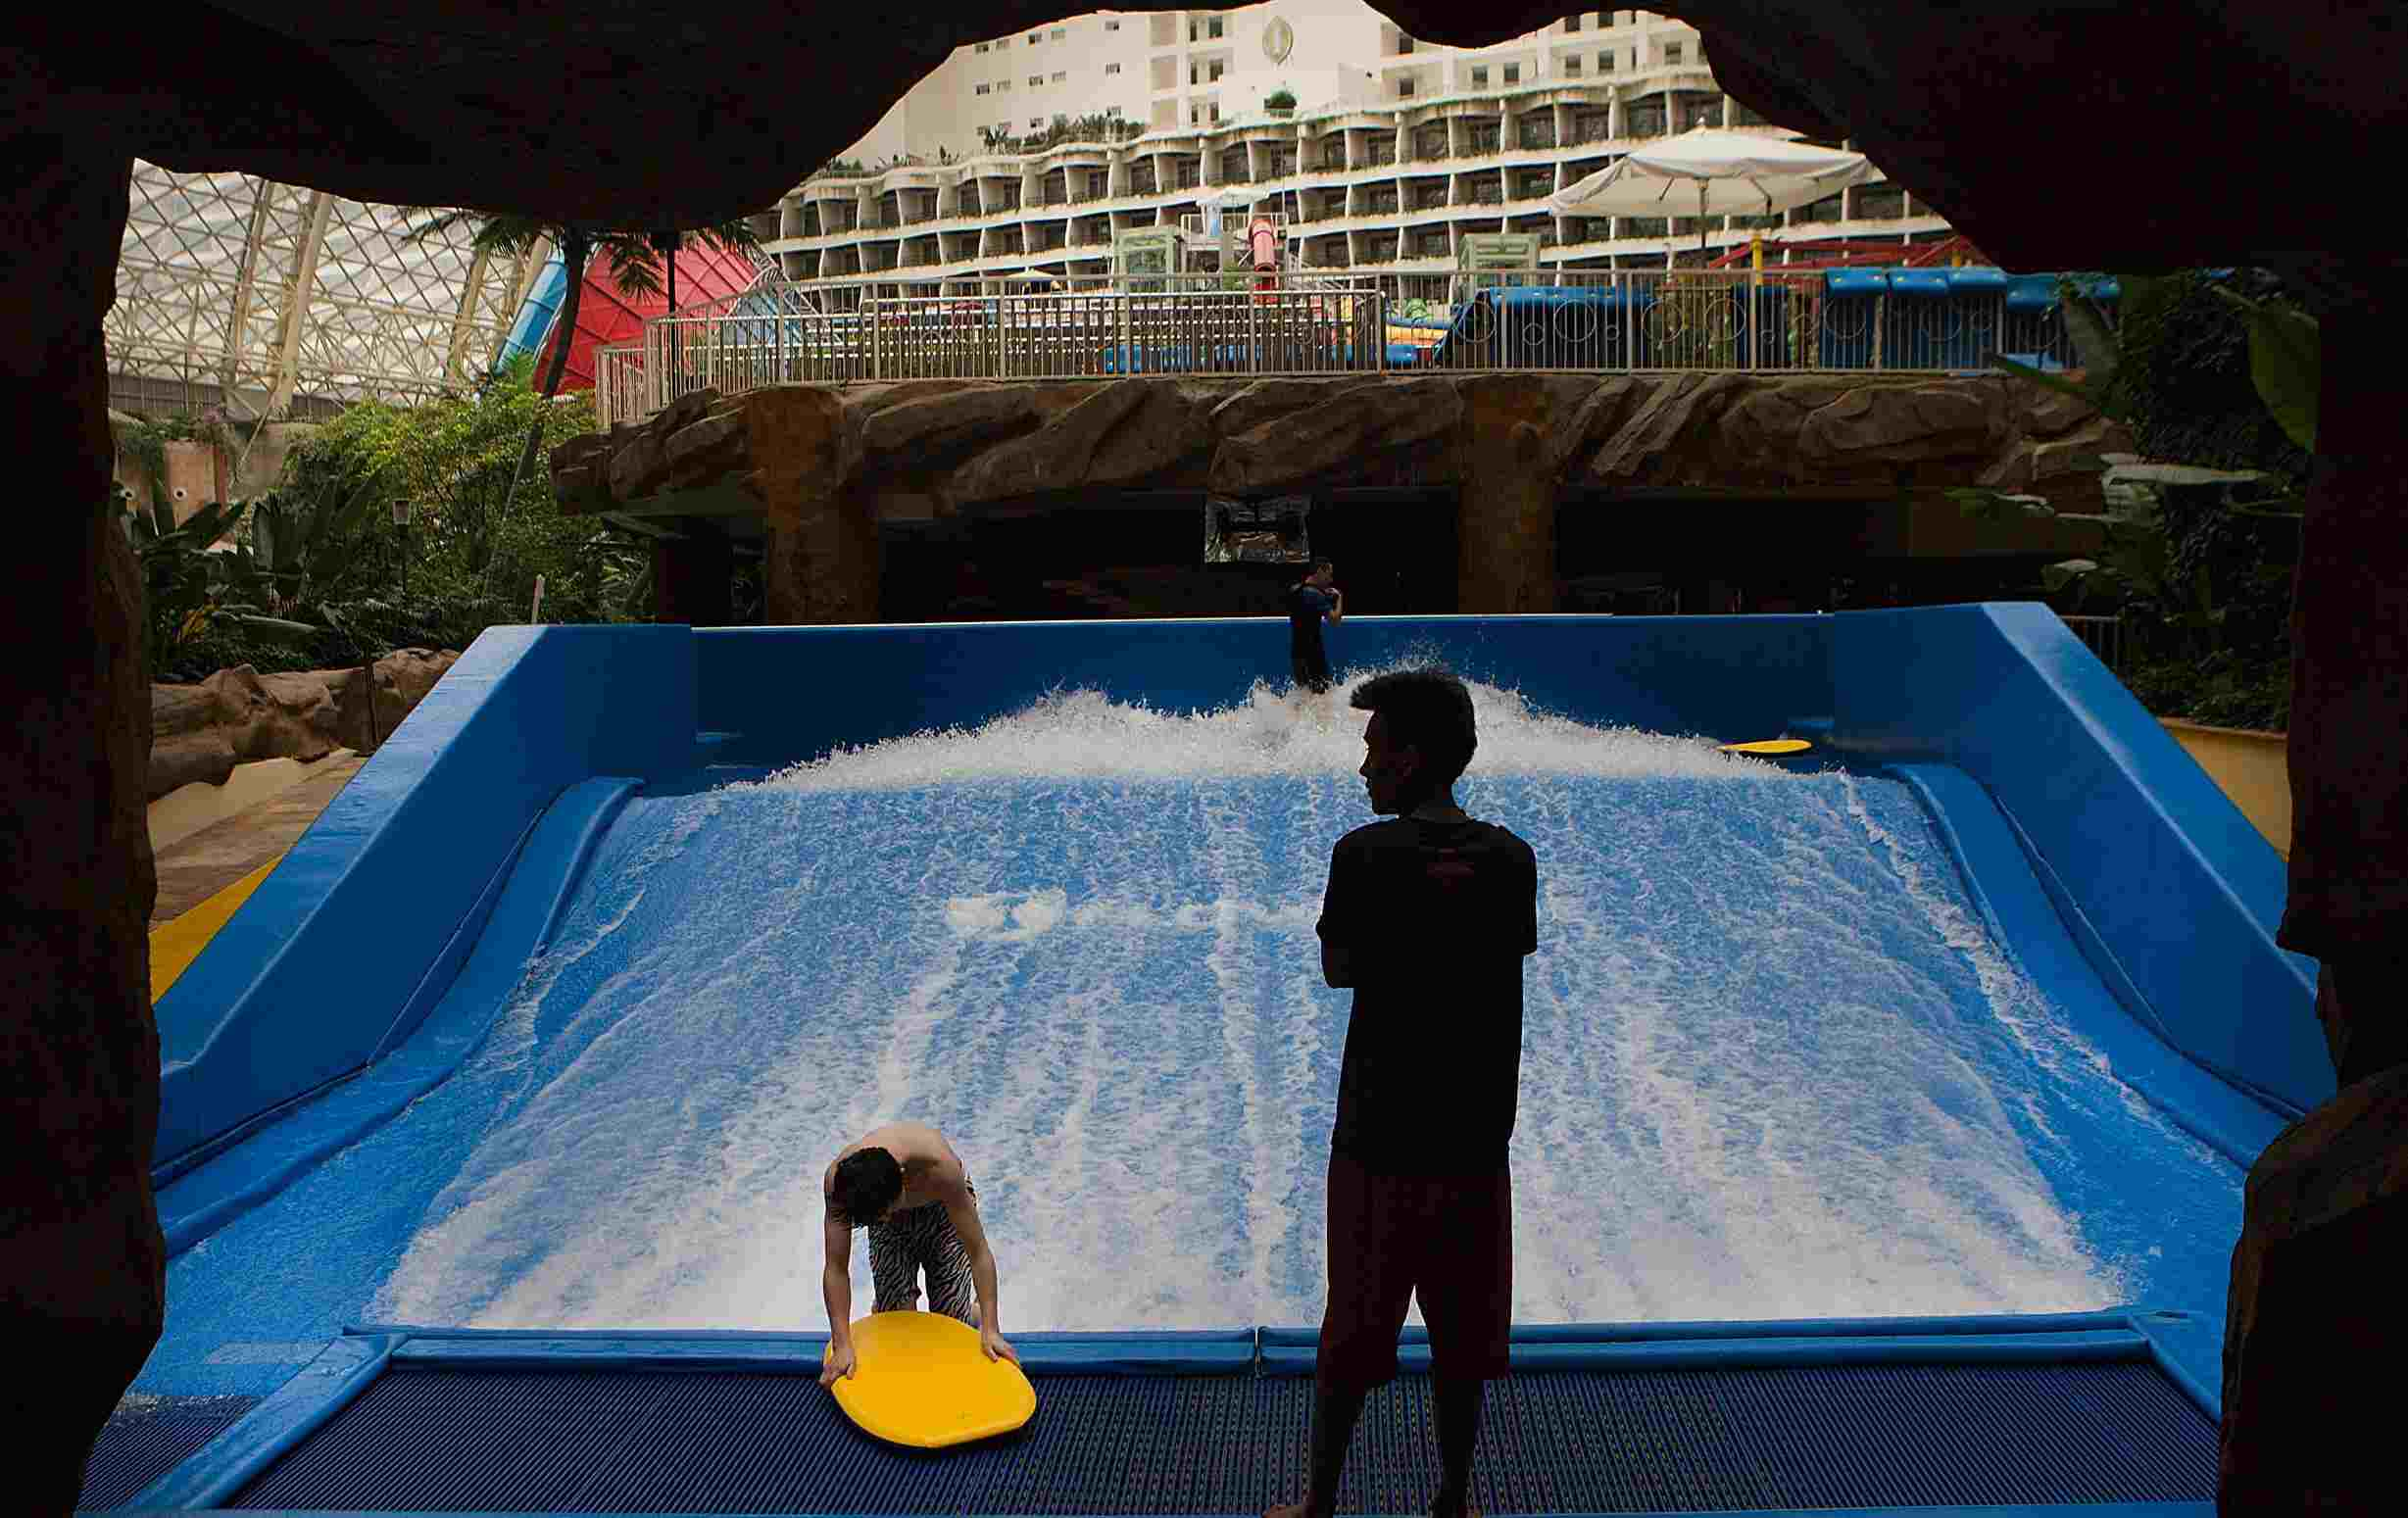 The Surf Simulator at the Paradise Island Water Park inside the largest building in the world, the New Century Global Center, Chengdu, China